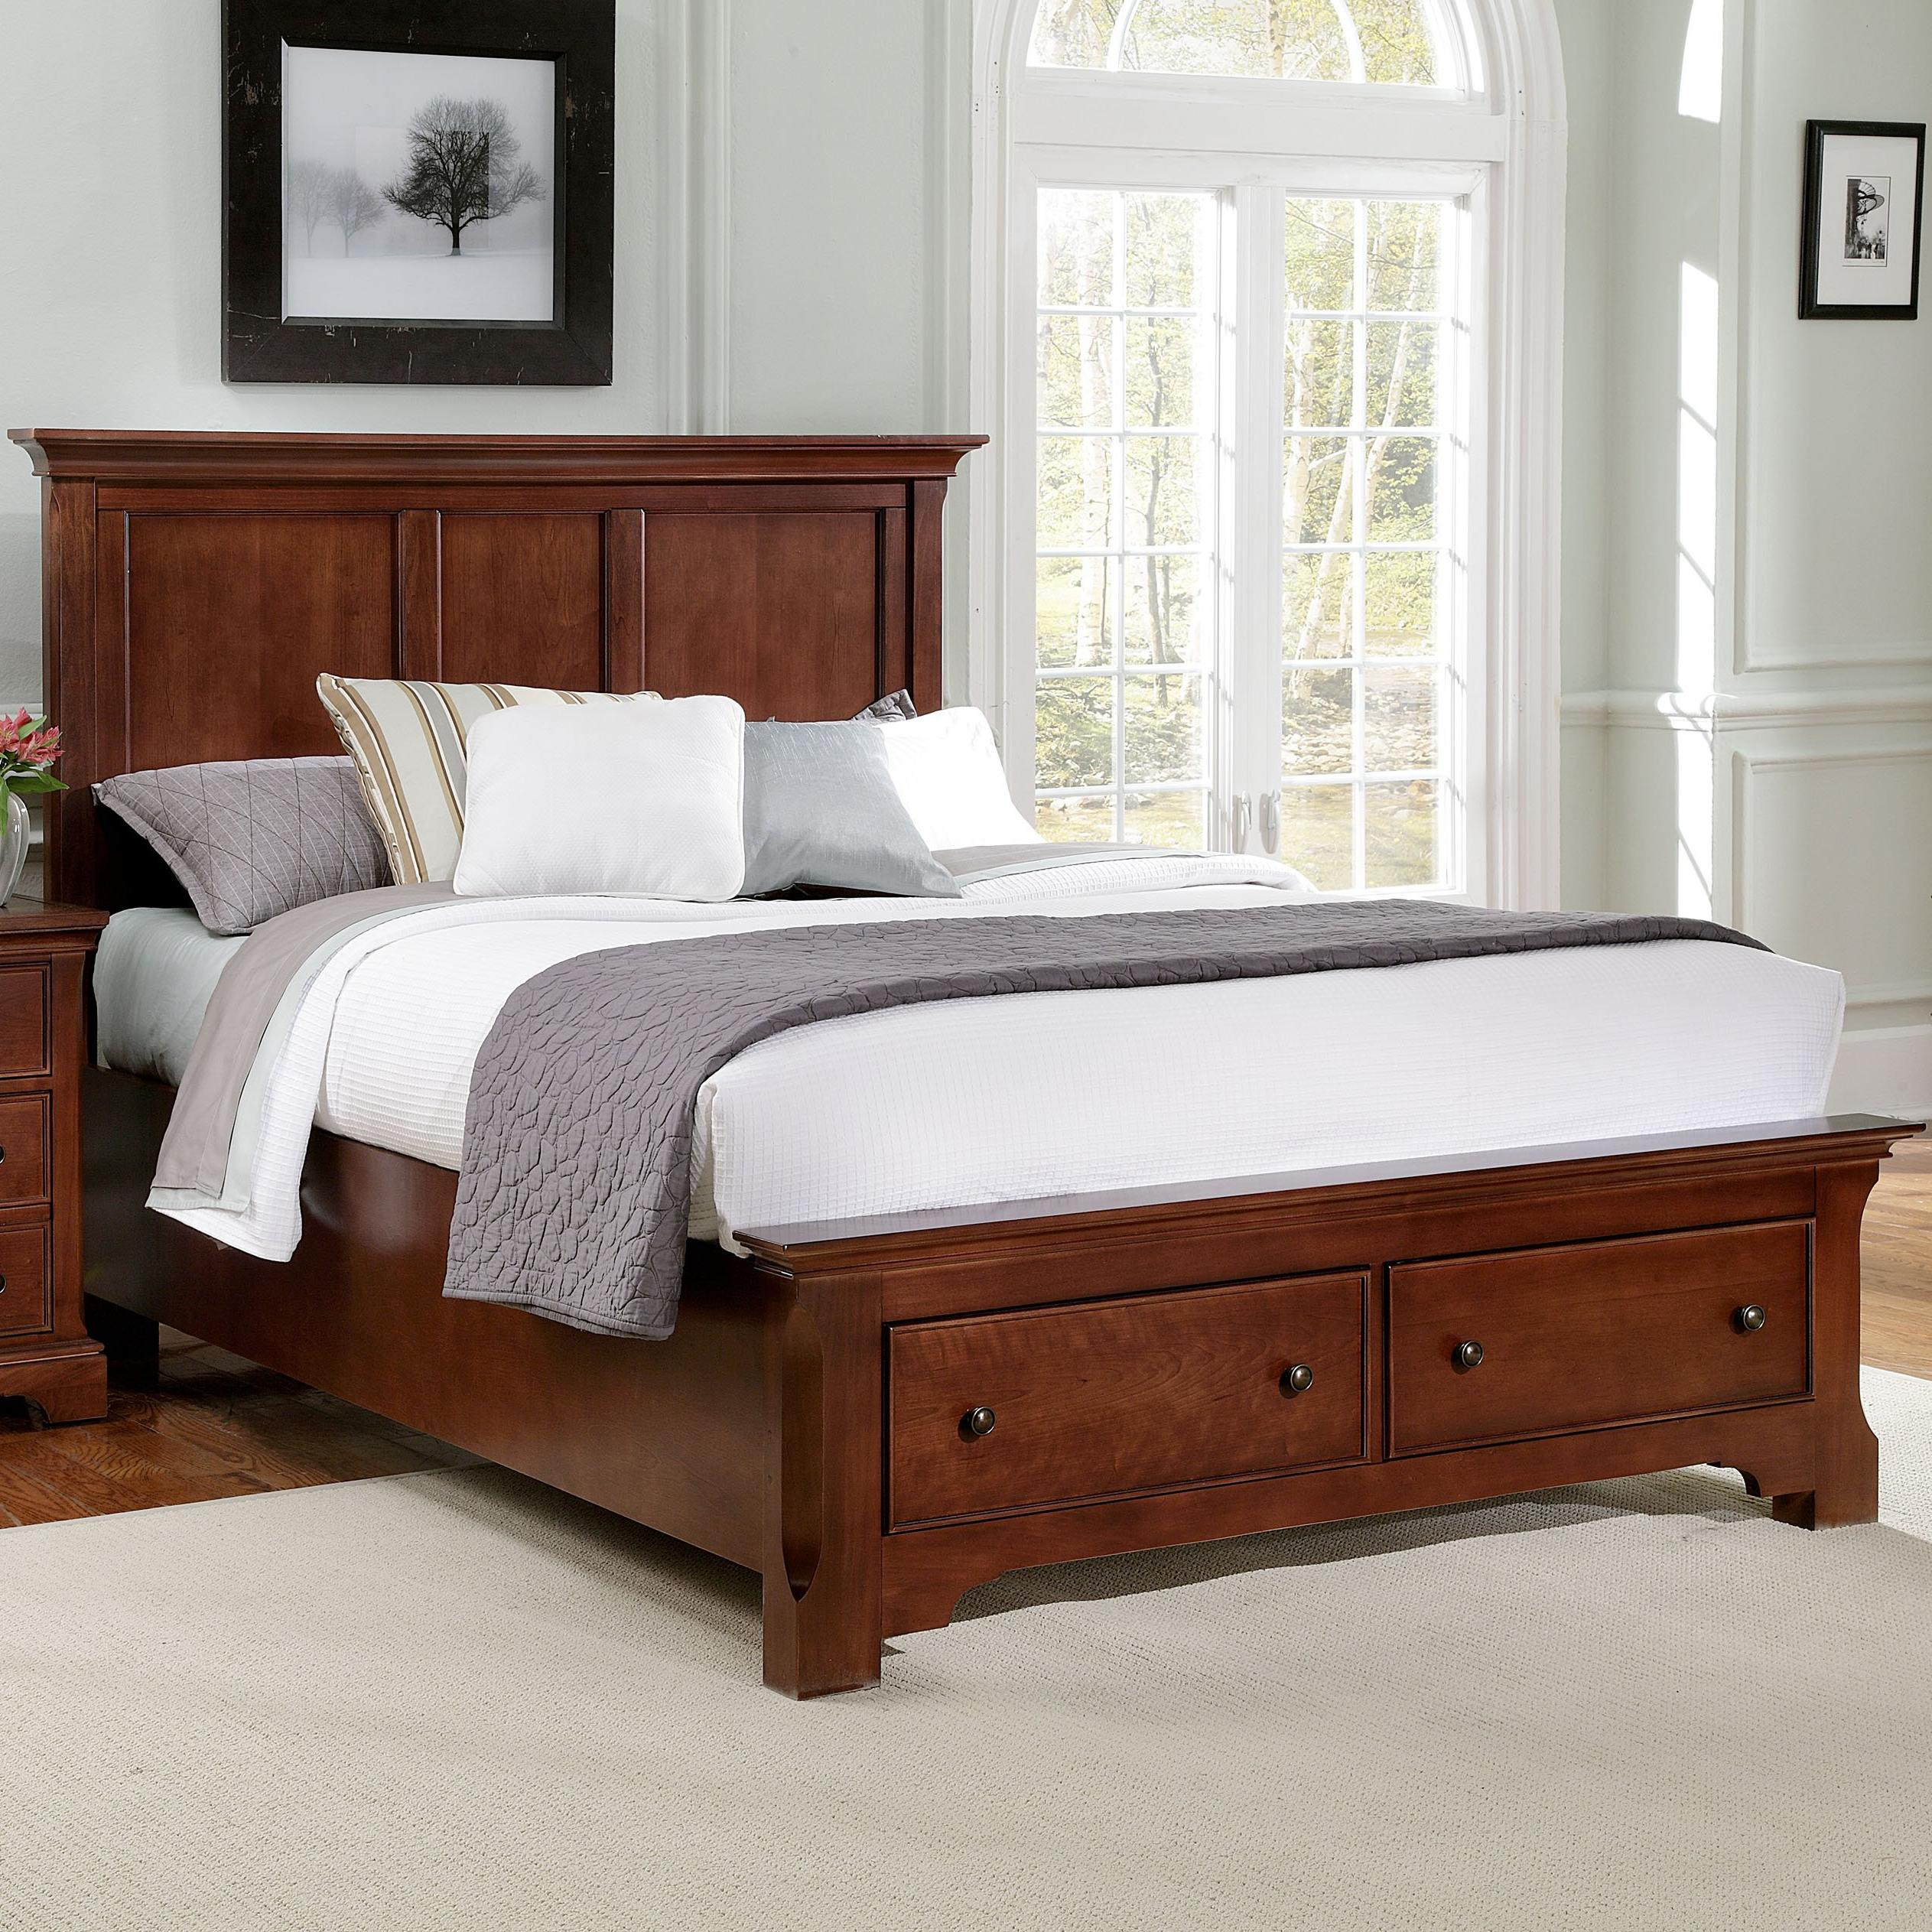 Vaughan Bassett Forsyth King Panel Storage Bed  - Item Number: BB77-668+066+501+666T